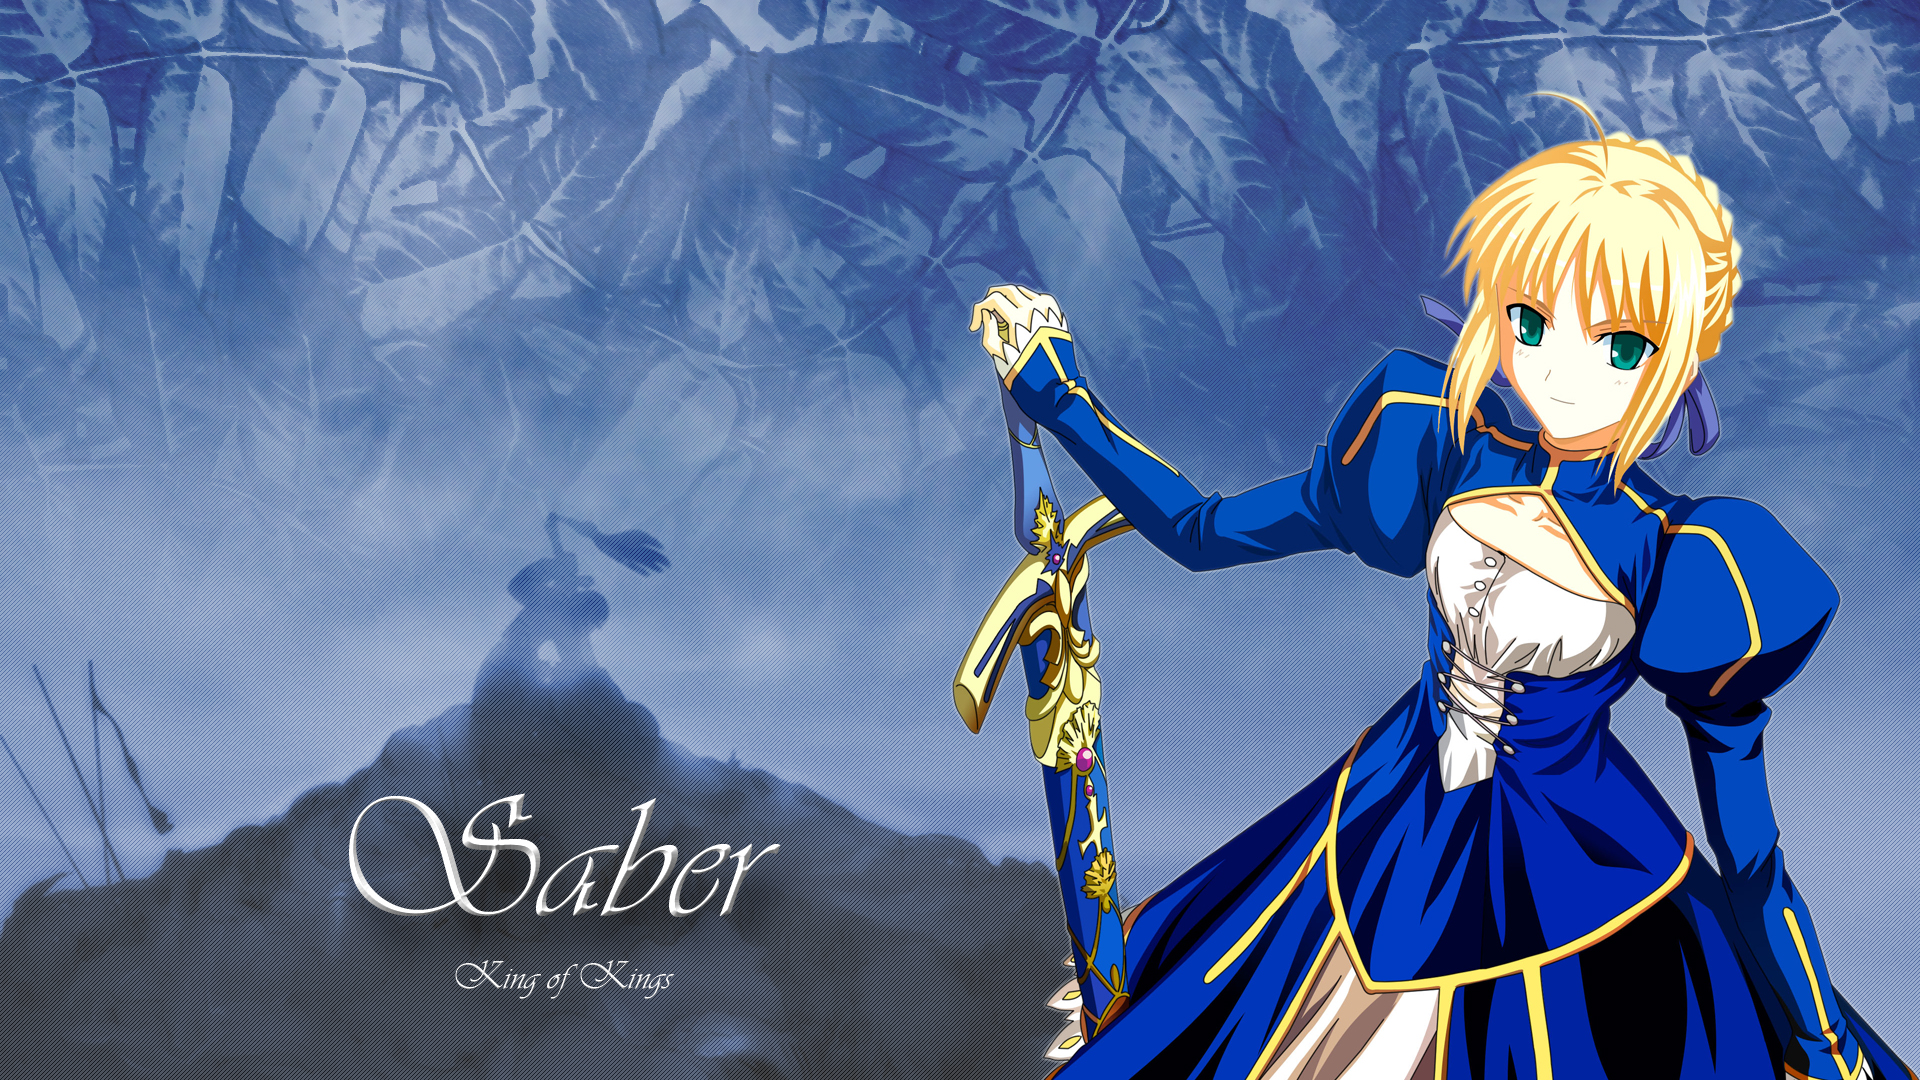 fatestay night saber konachancom   Konachancom Anime Wallpapers 1920x1080